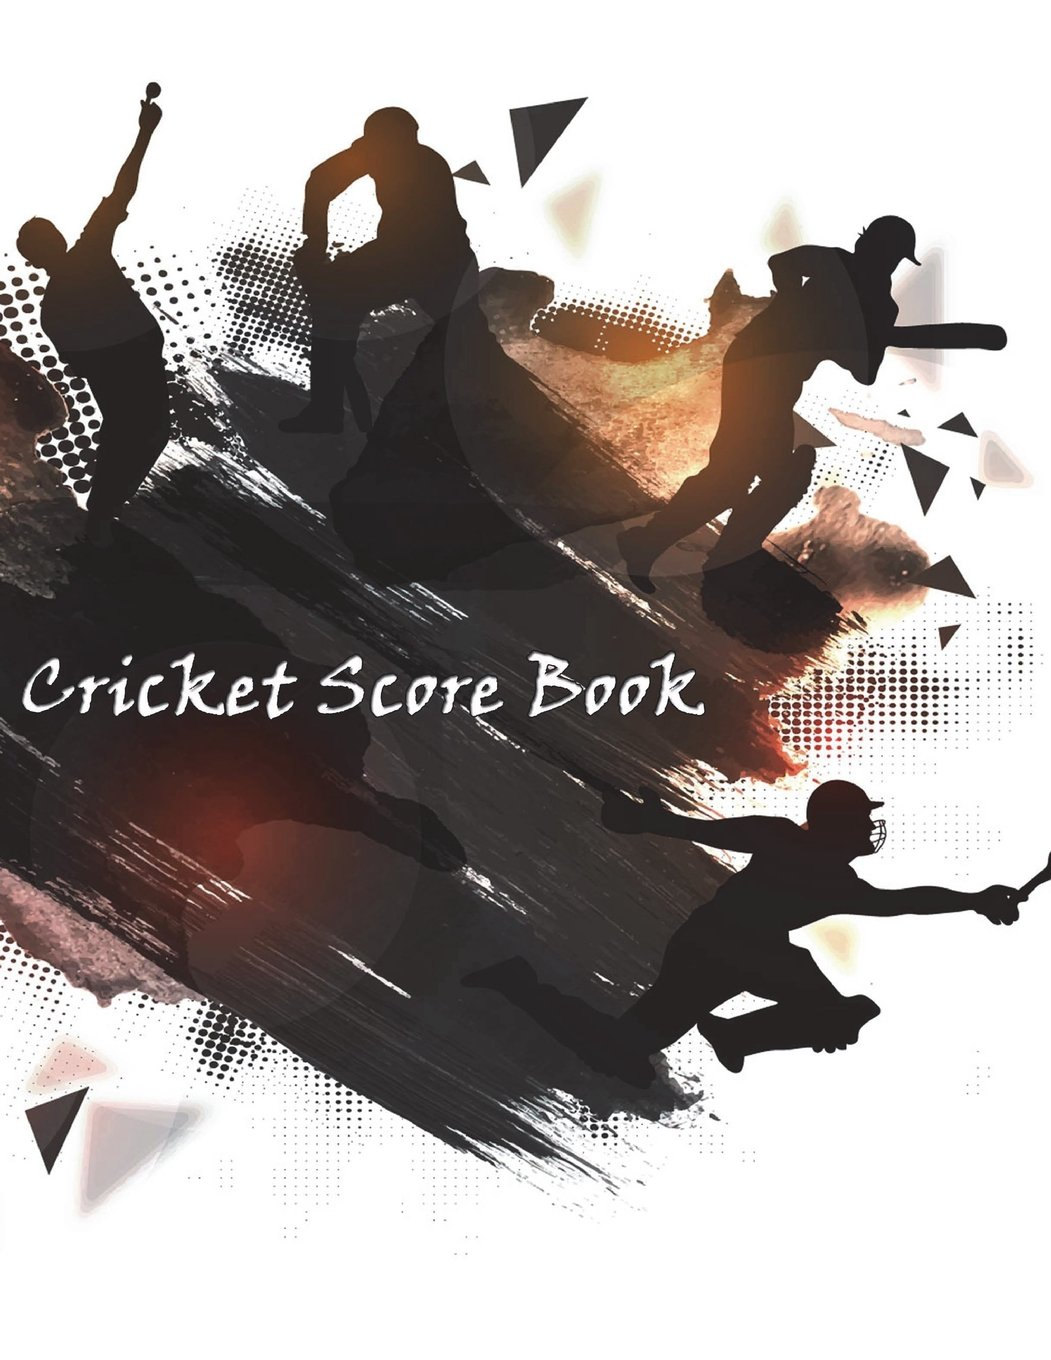 Cricket Score Book: Cricket Score Keeper Sheet has room for many details of play, From batsman runs, Cumulative run tally, To bowler stats, Size 8.5 x 11 Inch, 100 Pages pdf epub